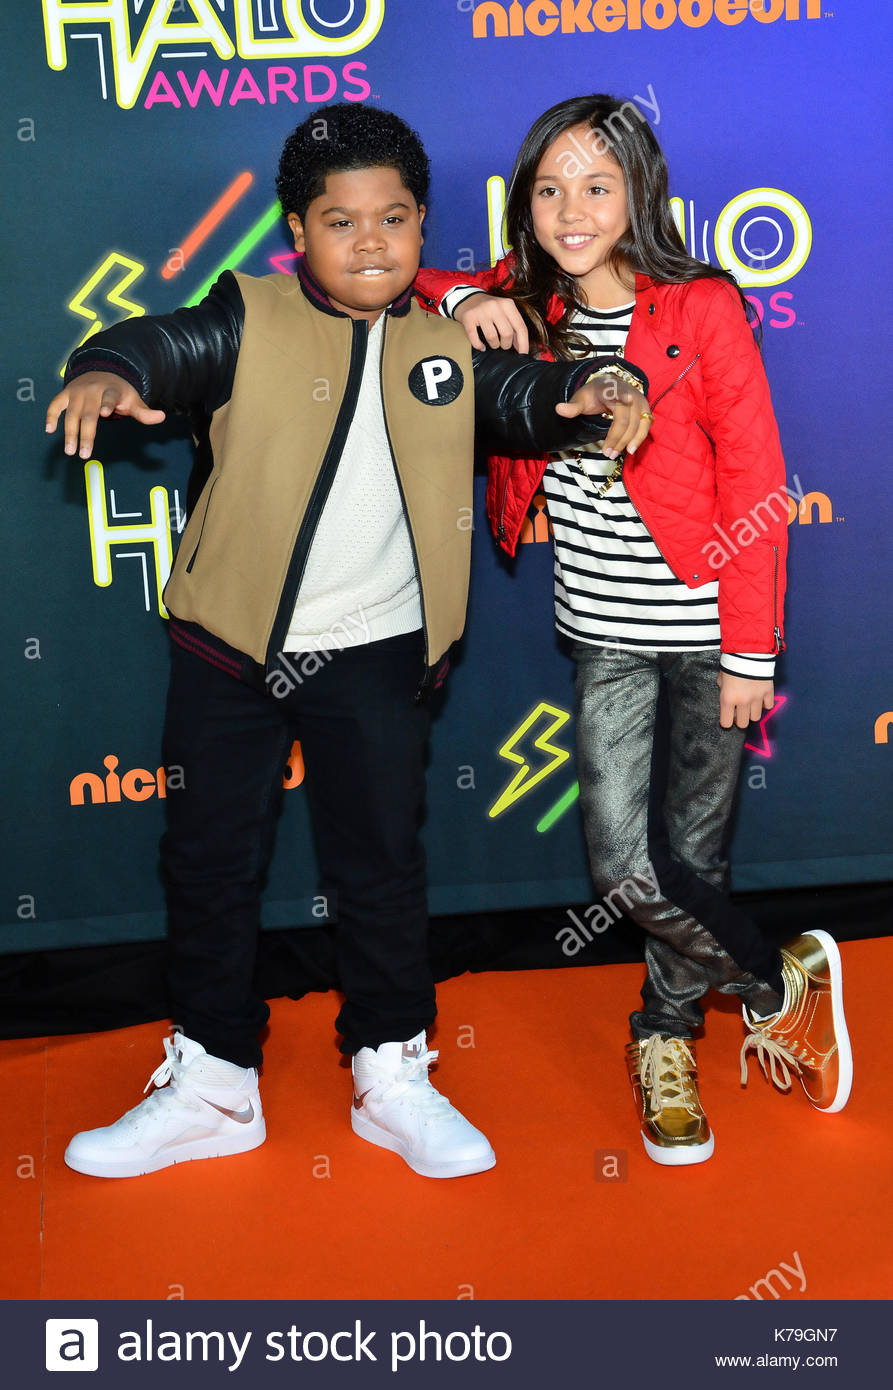 Breanna yde and benjamin flores jr stock photos breanna yde and benjamin flores jr and breanna yde 2014 nickelodeon halo awards at pier 36 on november thecheapjerseys Images